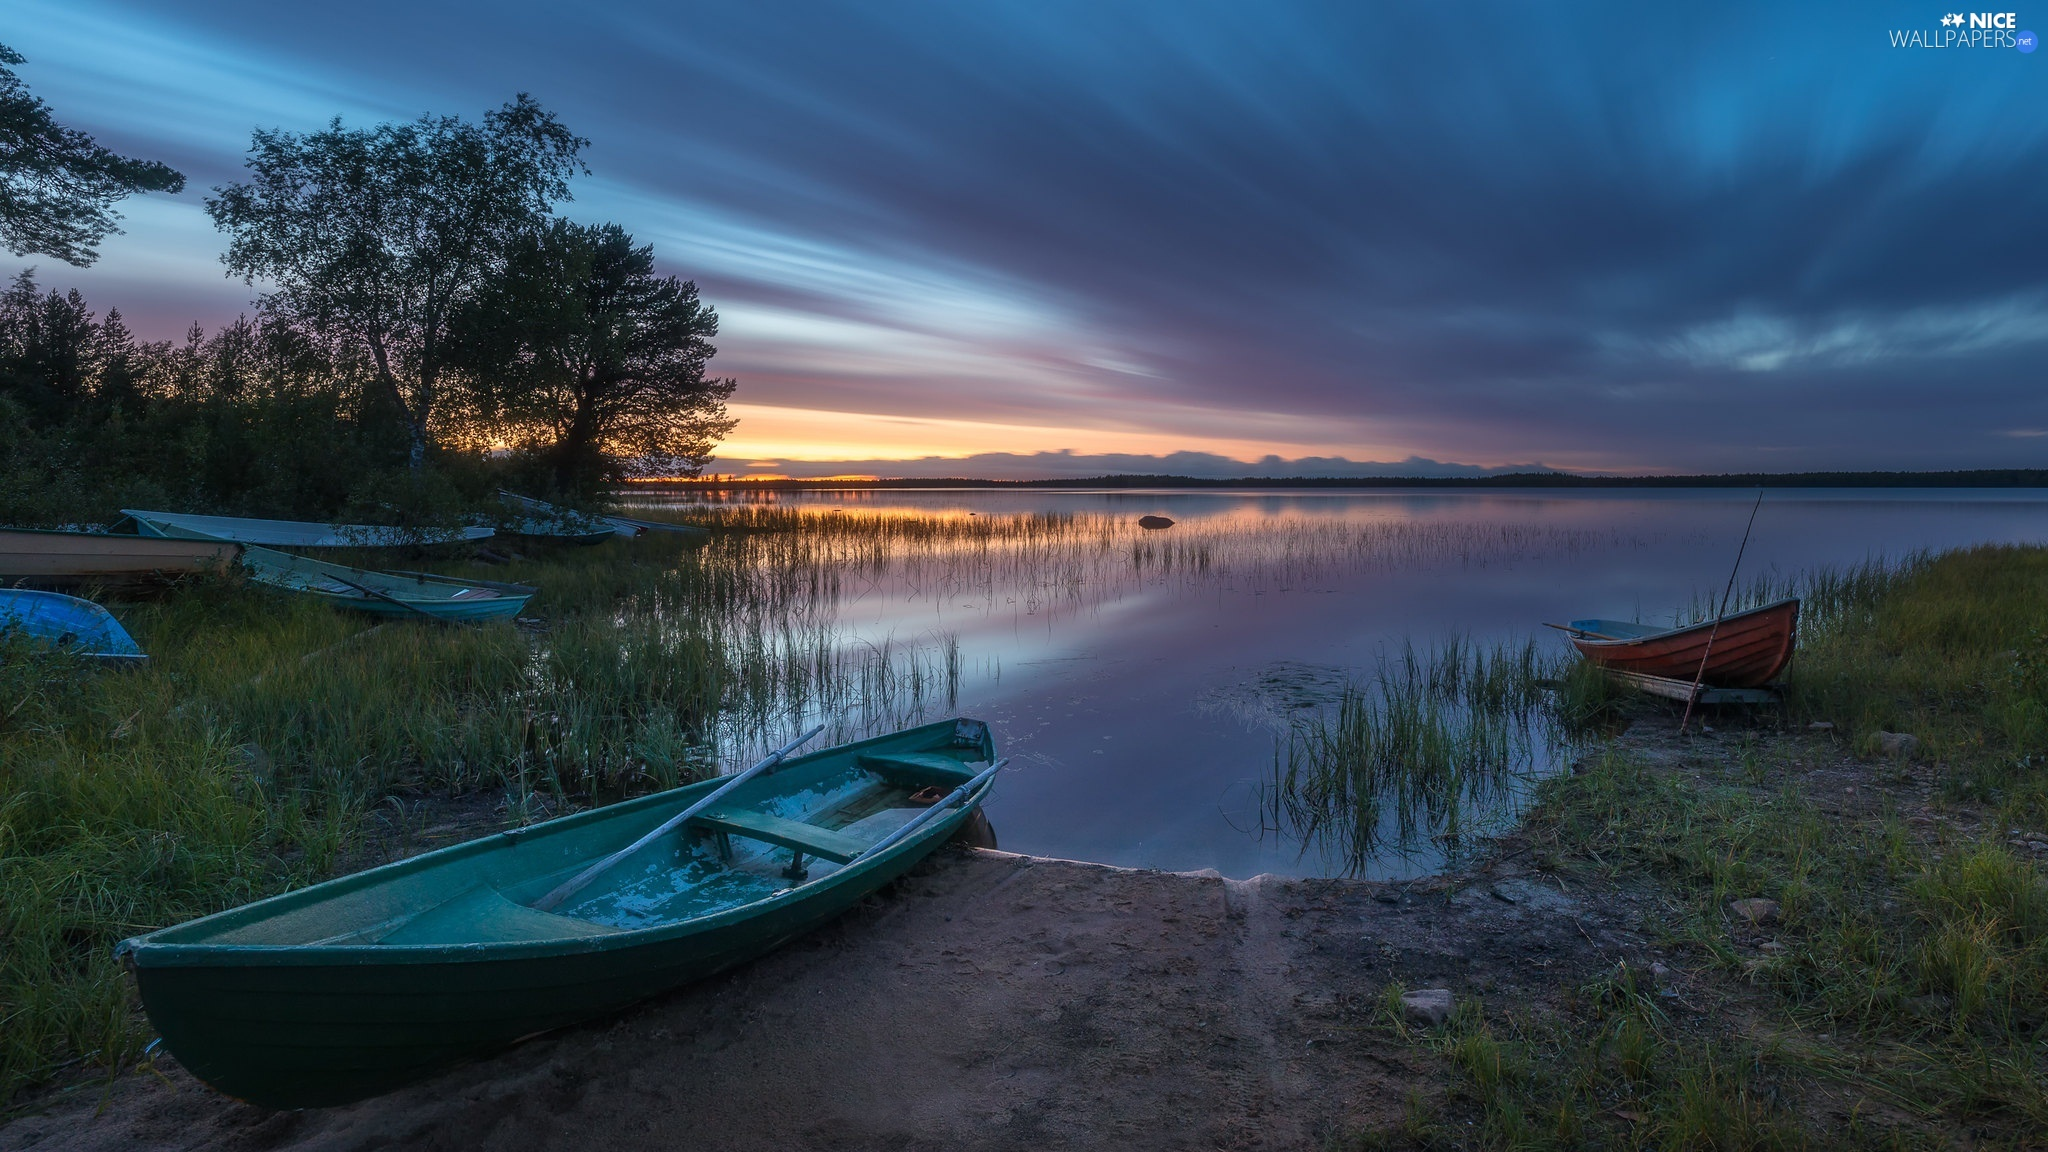 lake, Great Sunsets, trees, viewes, boats, clouds